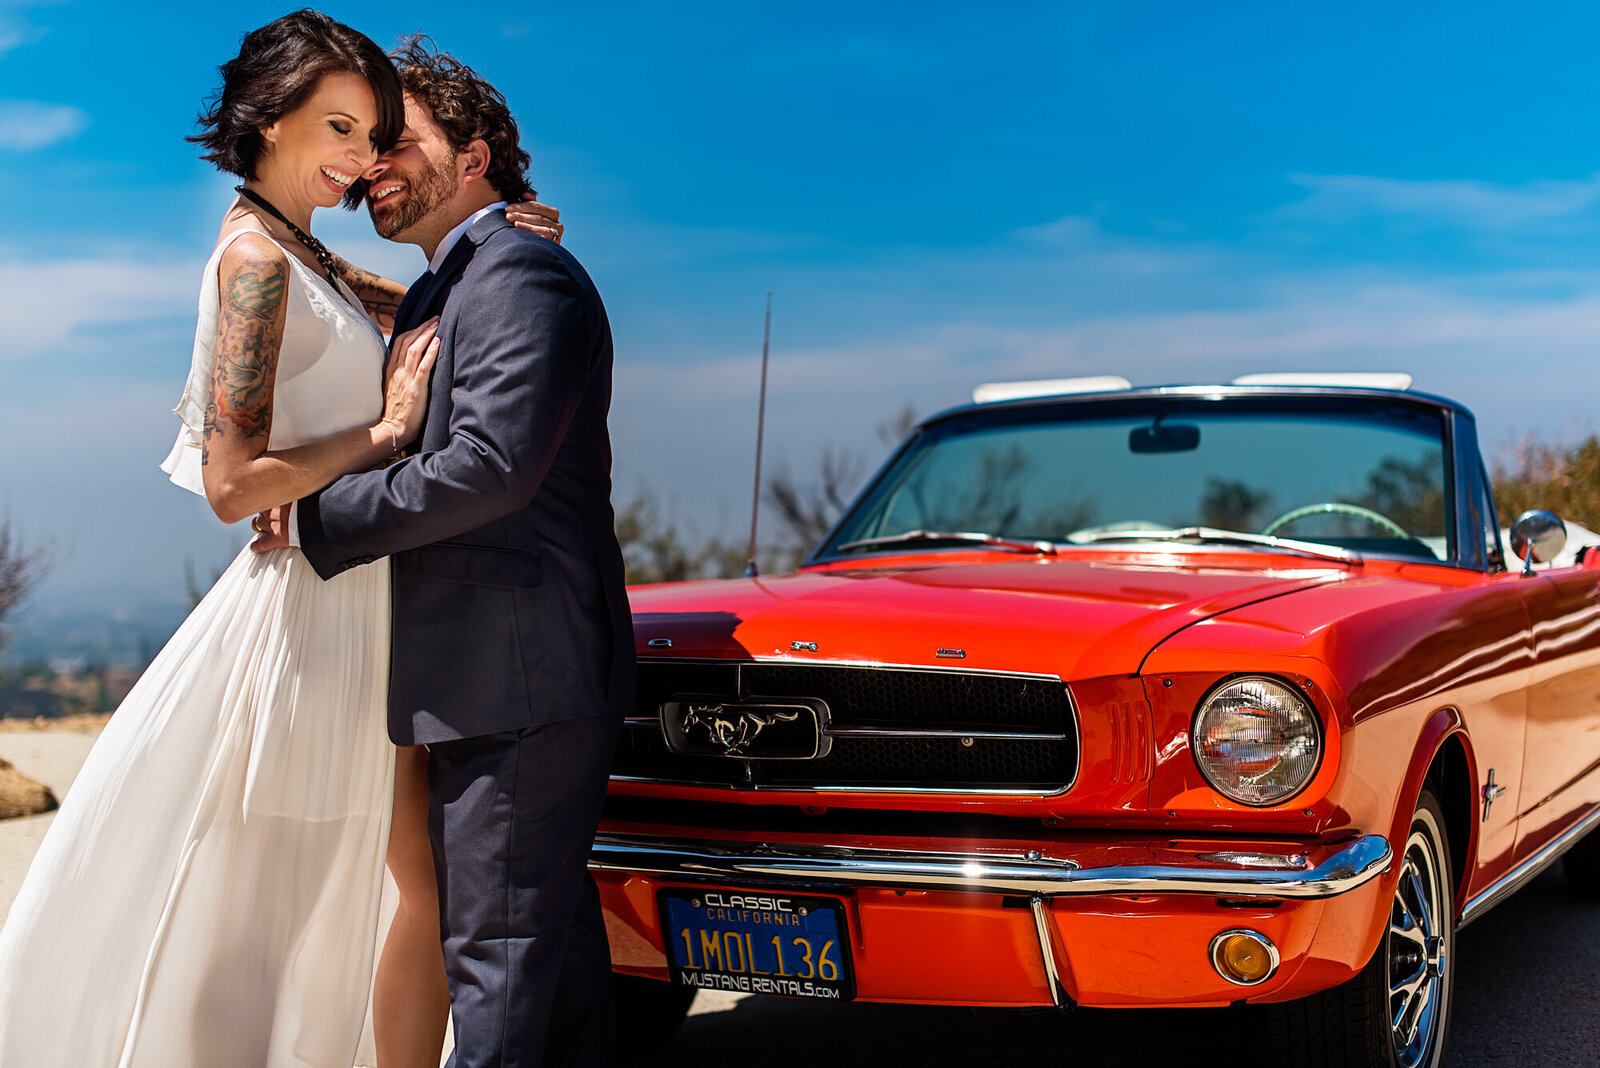 A beautiful husband a wife hired a photographer for a 10 year anniversary portrait in front of a candy apply red 1970's mustang convertible. If you're thinking about a special anniversary gift, a portrait session is an incredible idea.